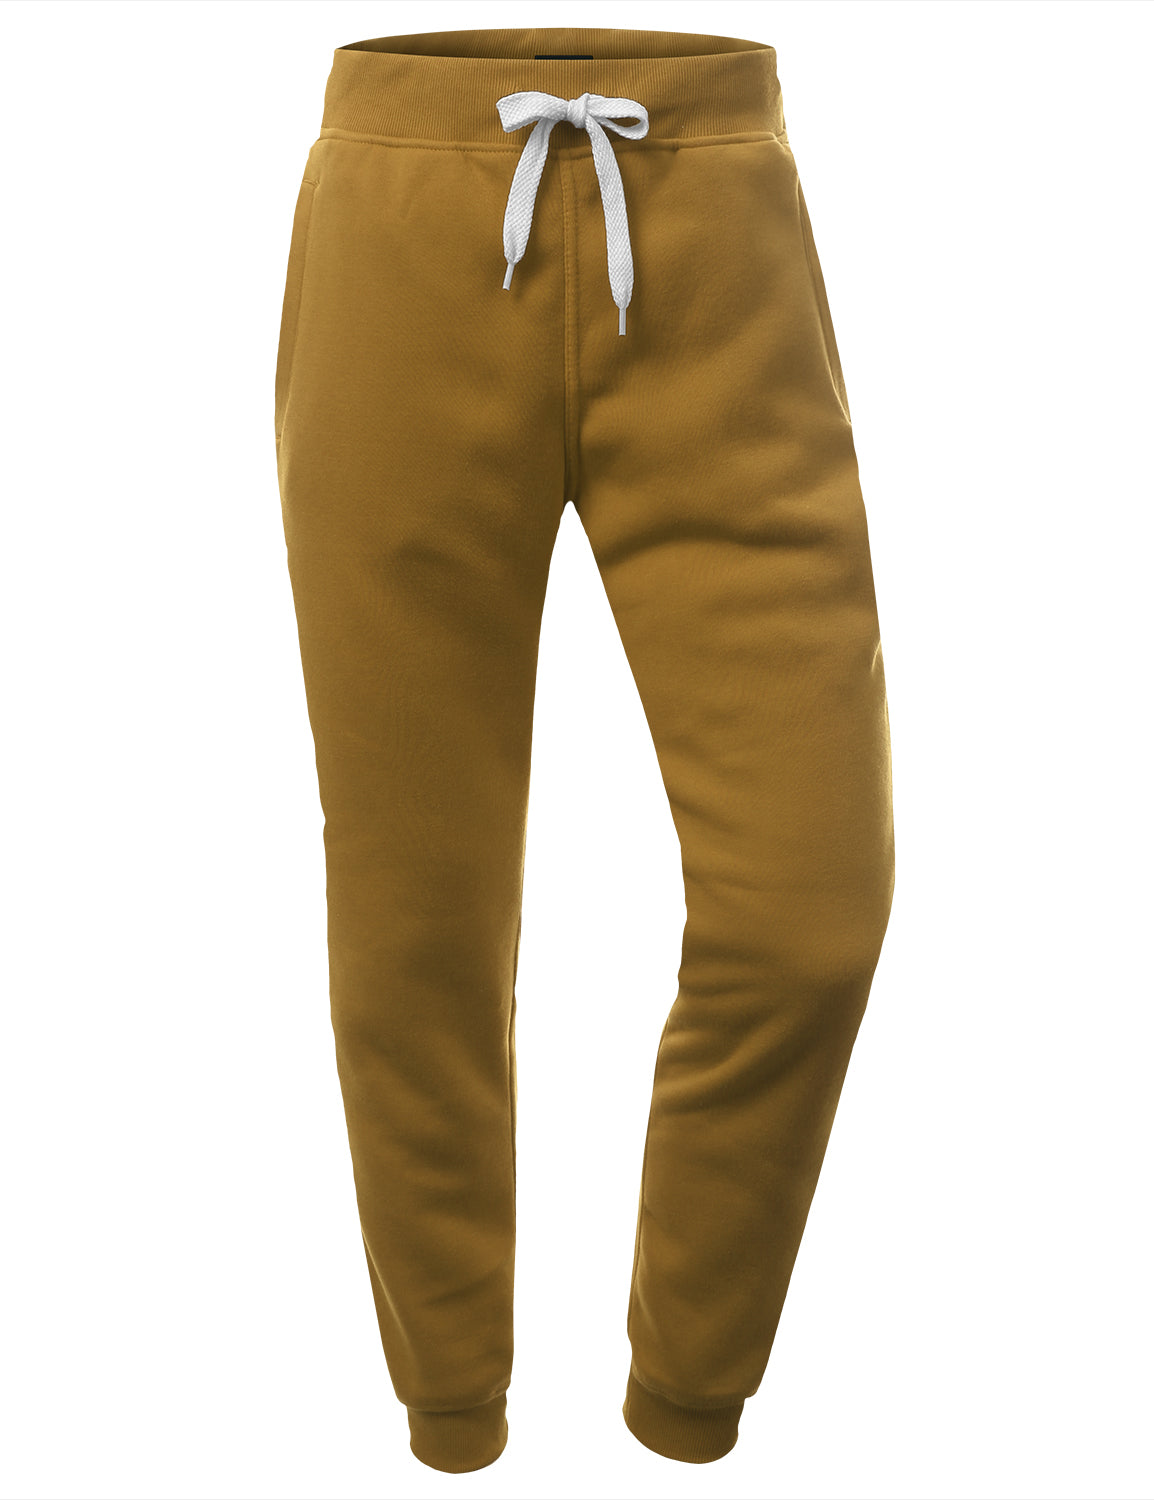 WHEAT Basic Fleece Jogger Sweatpants - URBANCREWS